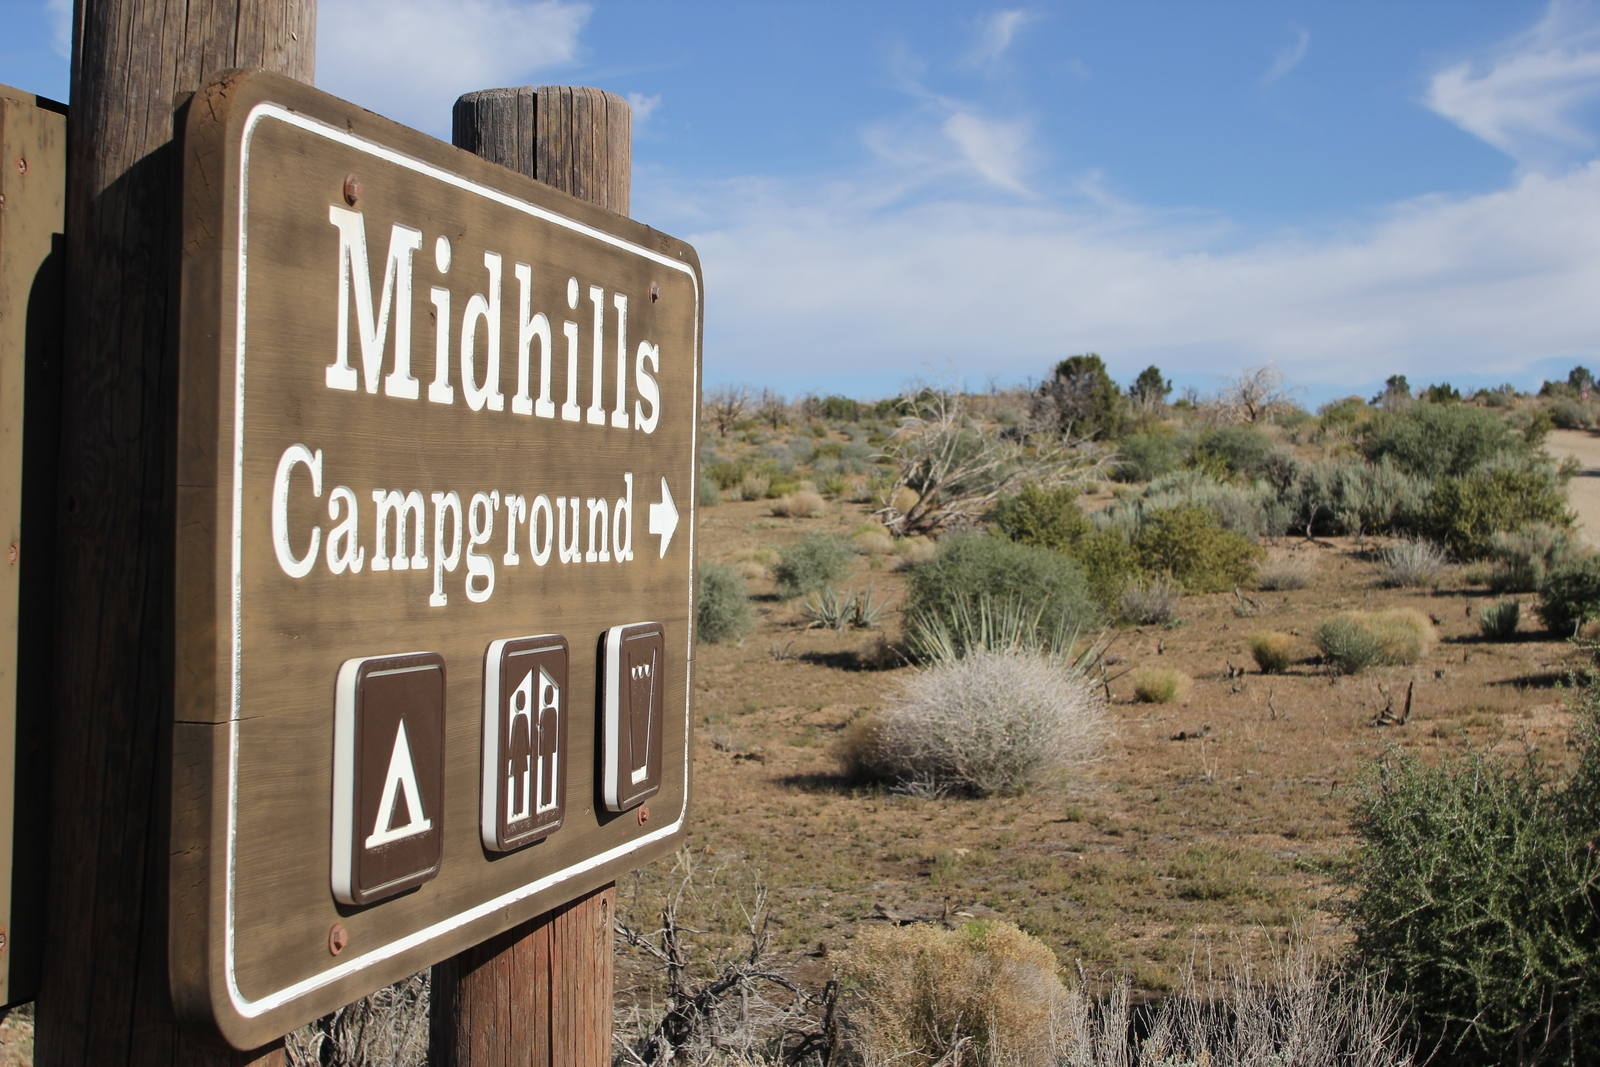 Midhills Campground area in 2012